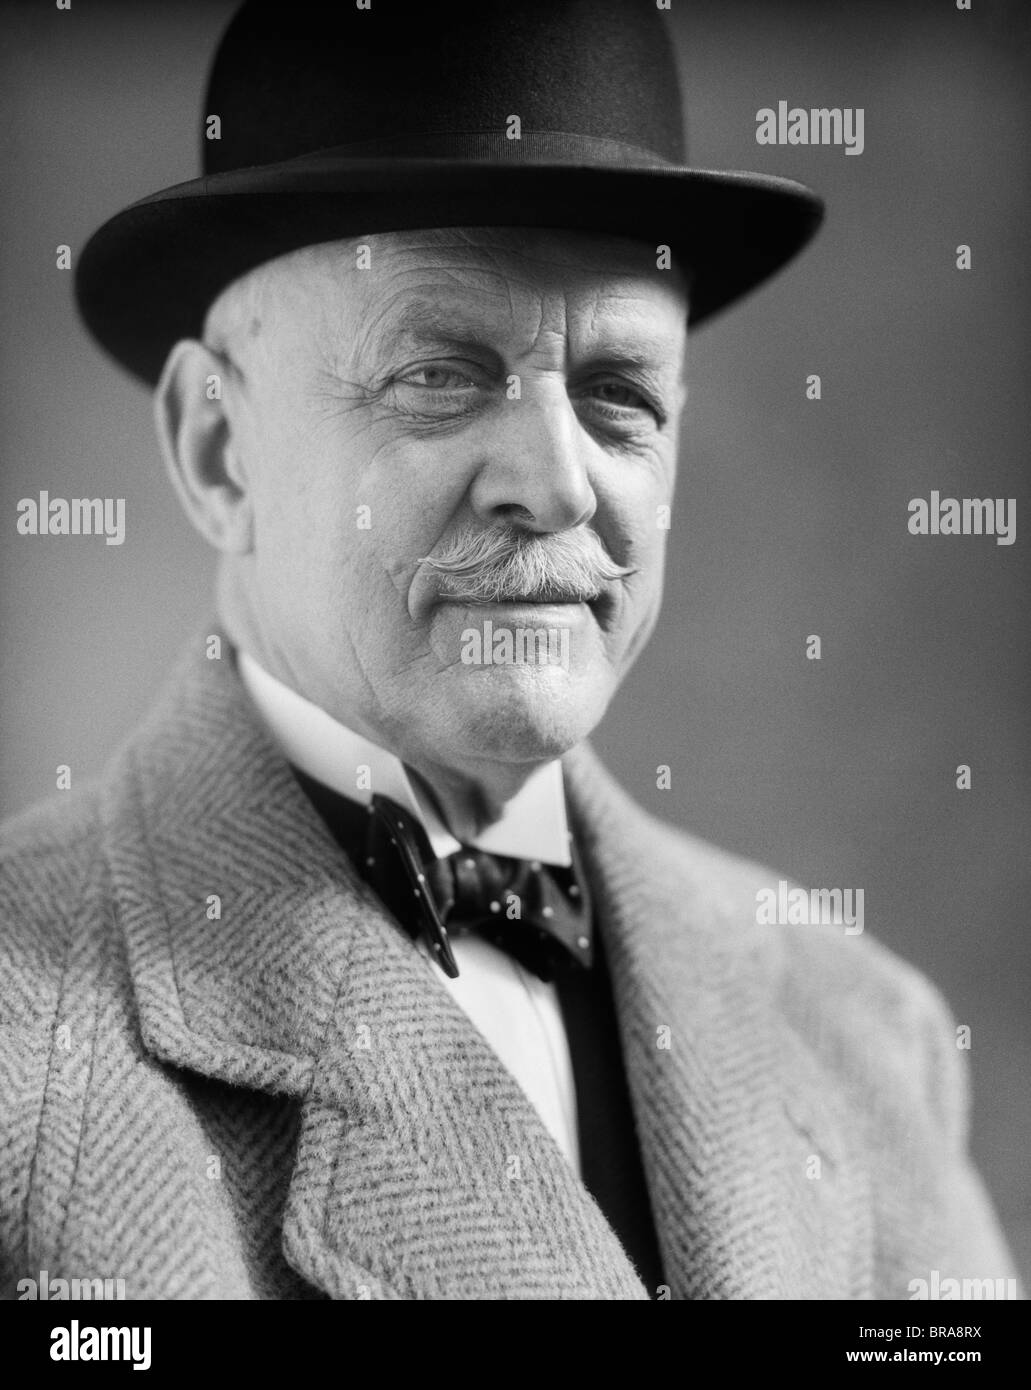 1930s PORTRAIT OF OLDER MAN WITH A MUSTACHE WEARING A BOWLER HAT AND BOW TIE - Stock Image